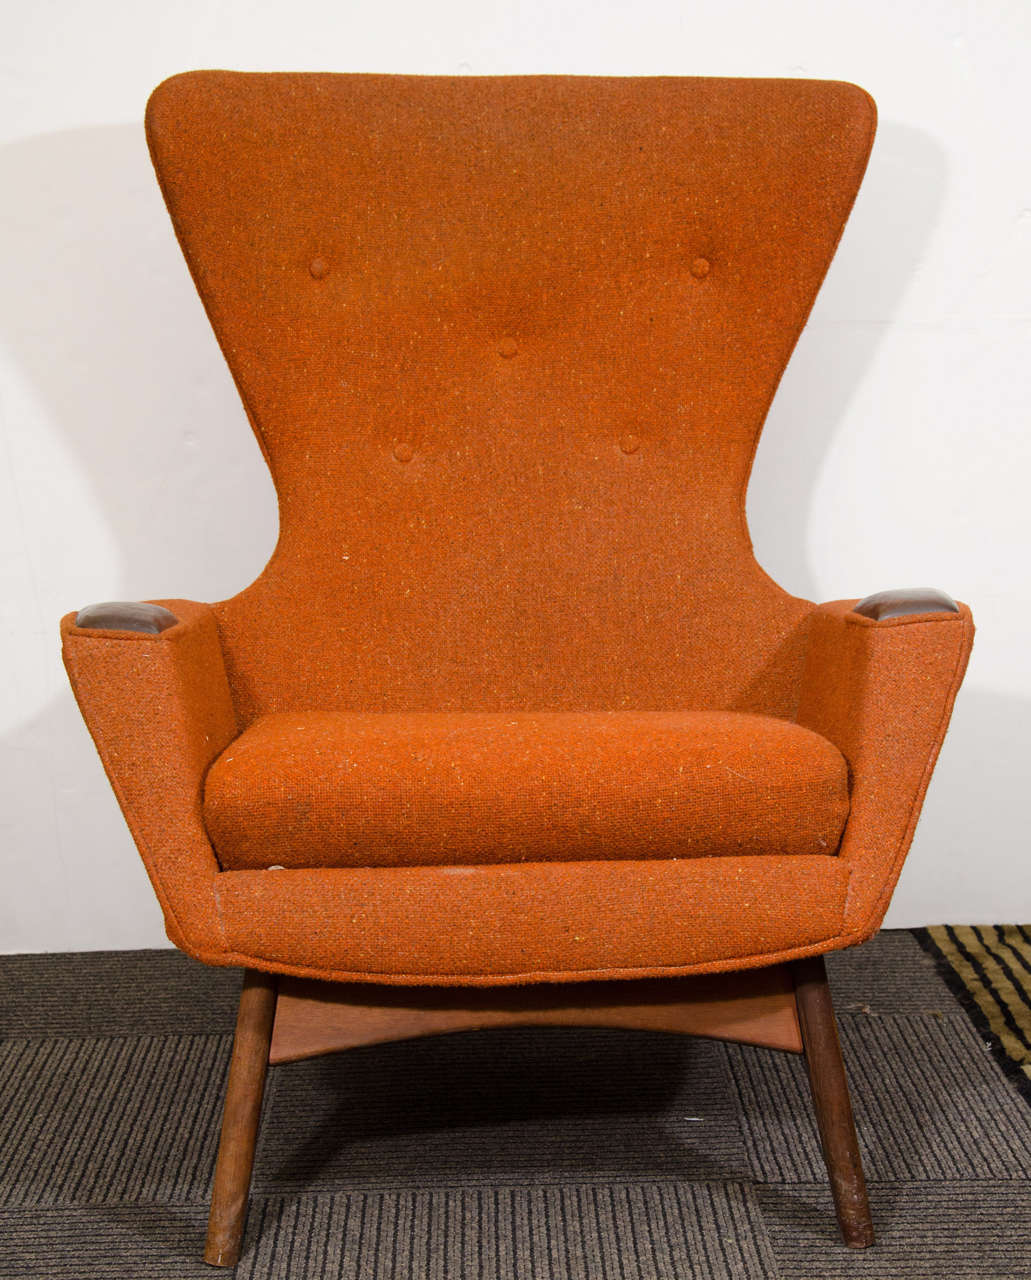 Orange Wingback Chair Midcentury High Back Wing Chair By Adrian Pearsall At 1stdibs